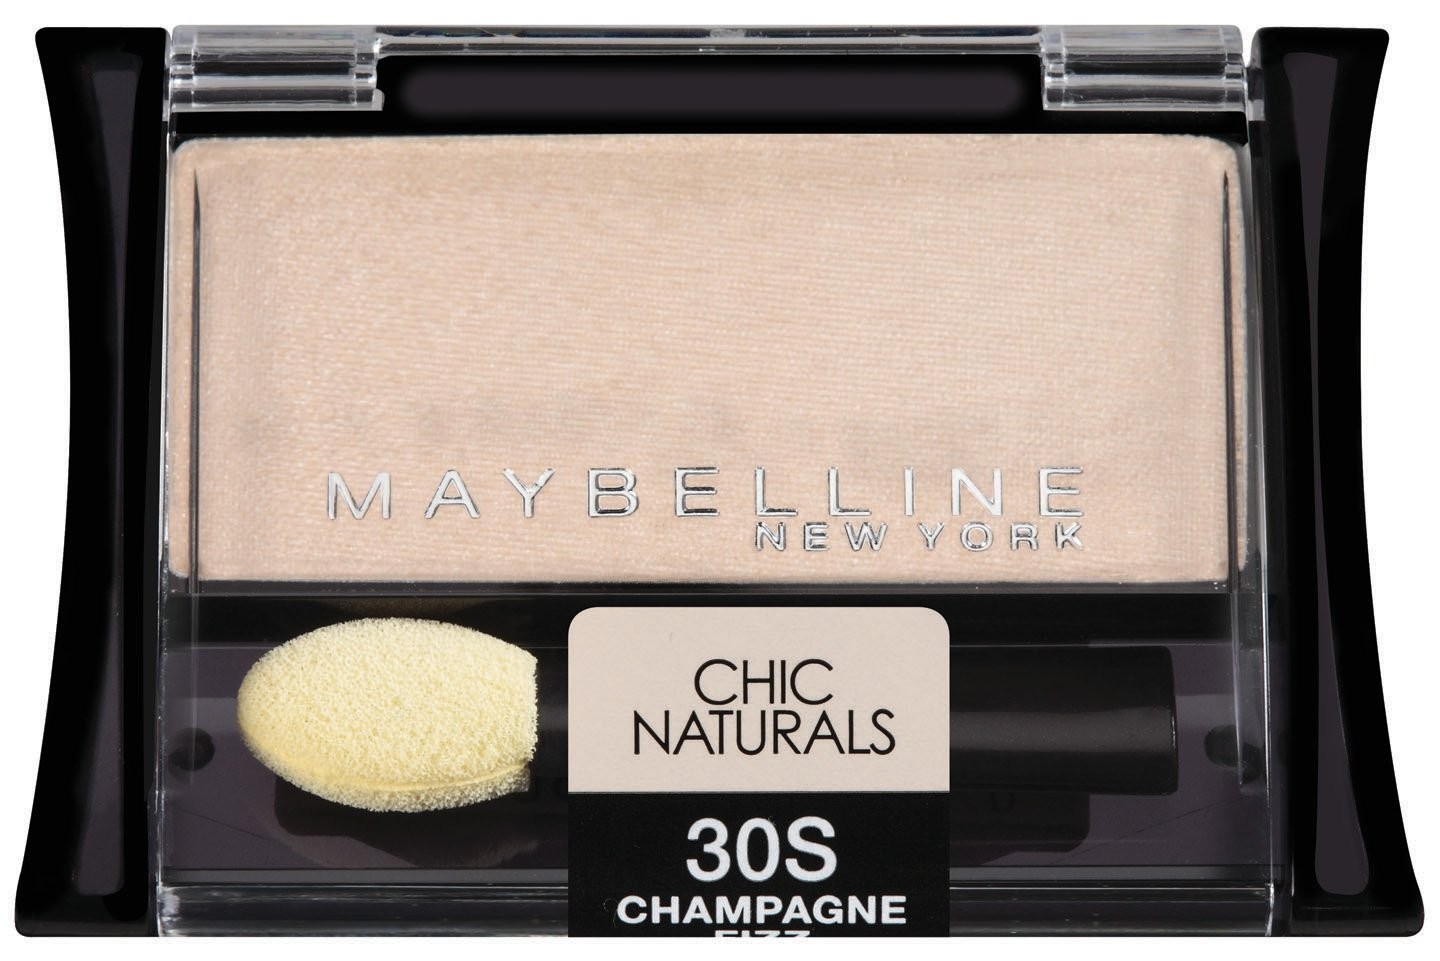 Maybelline New York Expert Wear Eyeshadow Singles Max 41% OFF Clearance SALE Limited time 30s Champagne